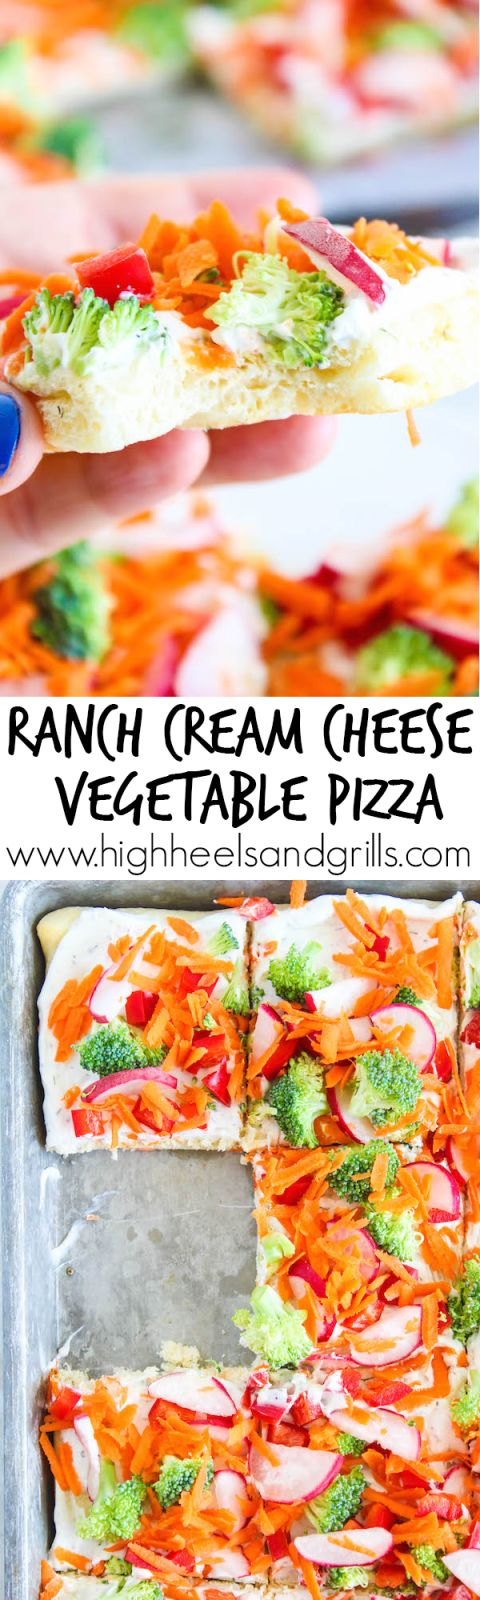 Ranch Cream Cheese Vegetable Pizza - This stuff is the bomb. It's the easiest thing in the world to make and everyone I know that has tried it, has loved it!